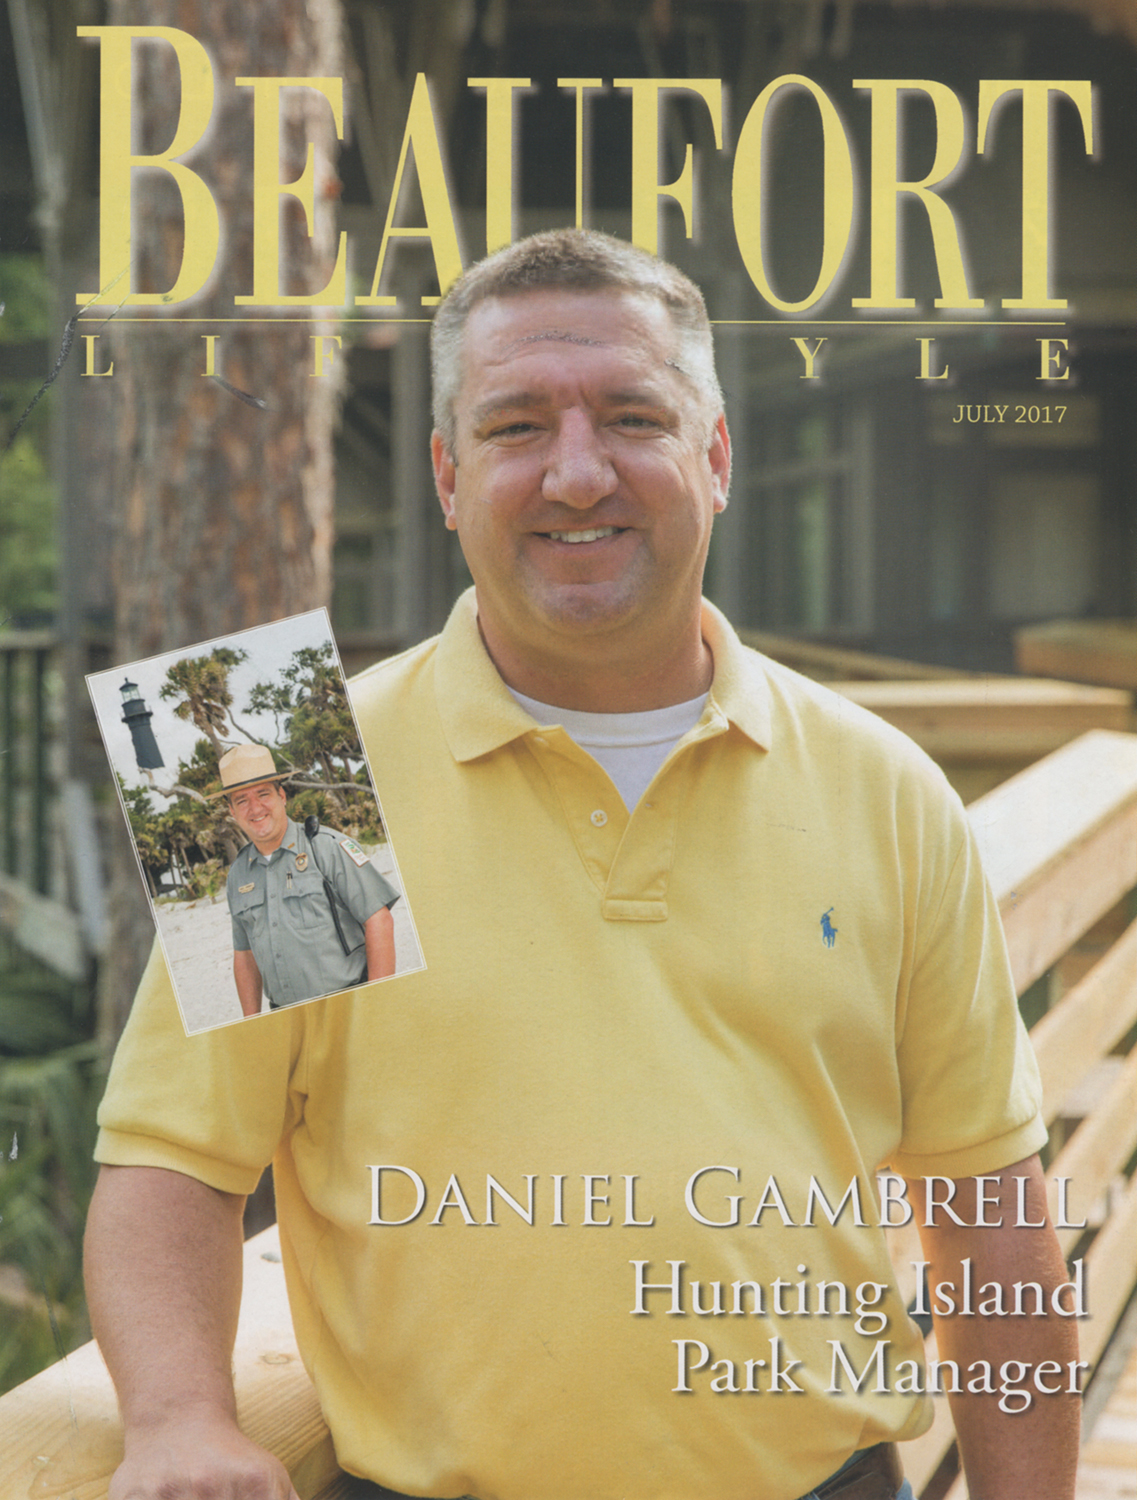 Editorial photography for Beaufort lifestyle magazine Daniel Gambrell